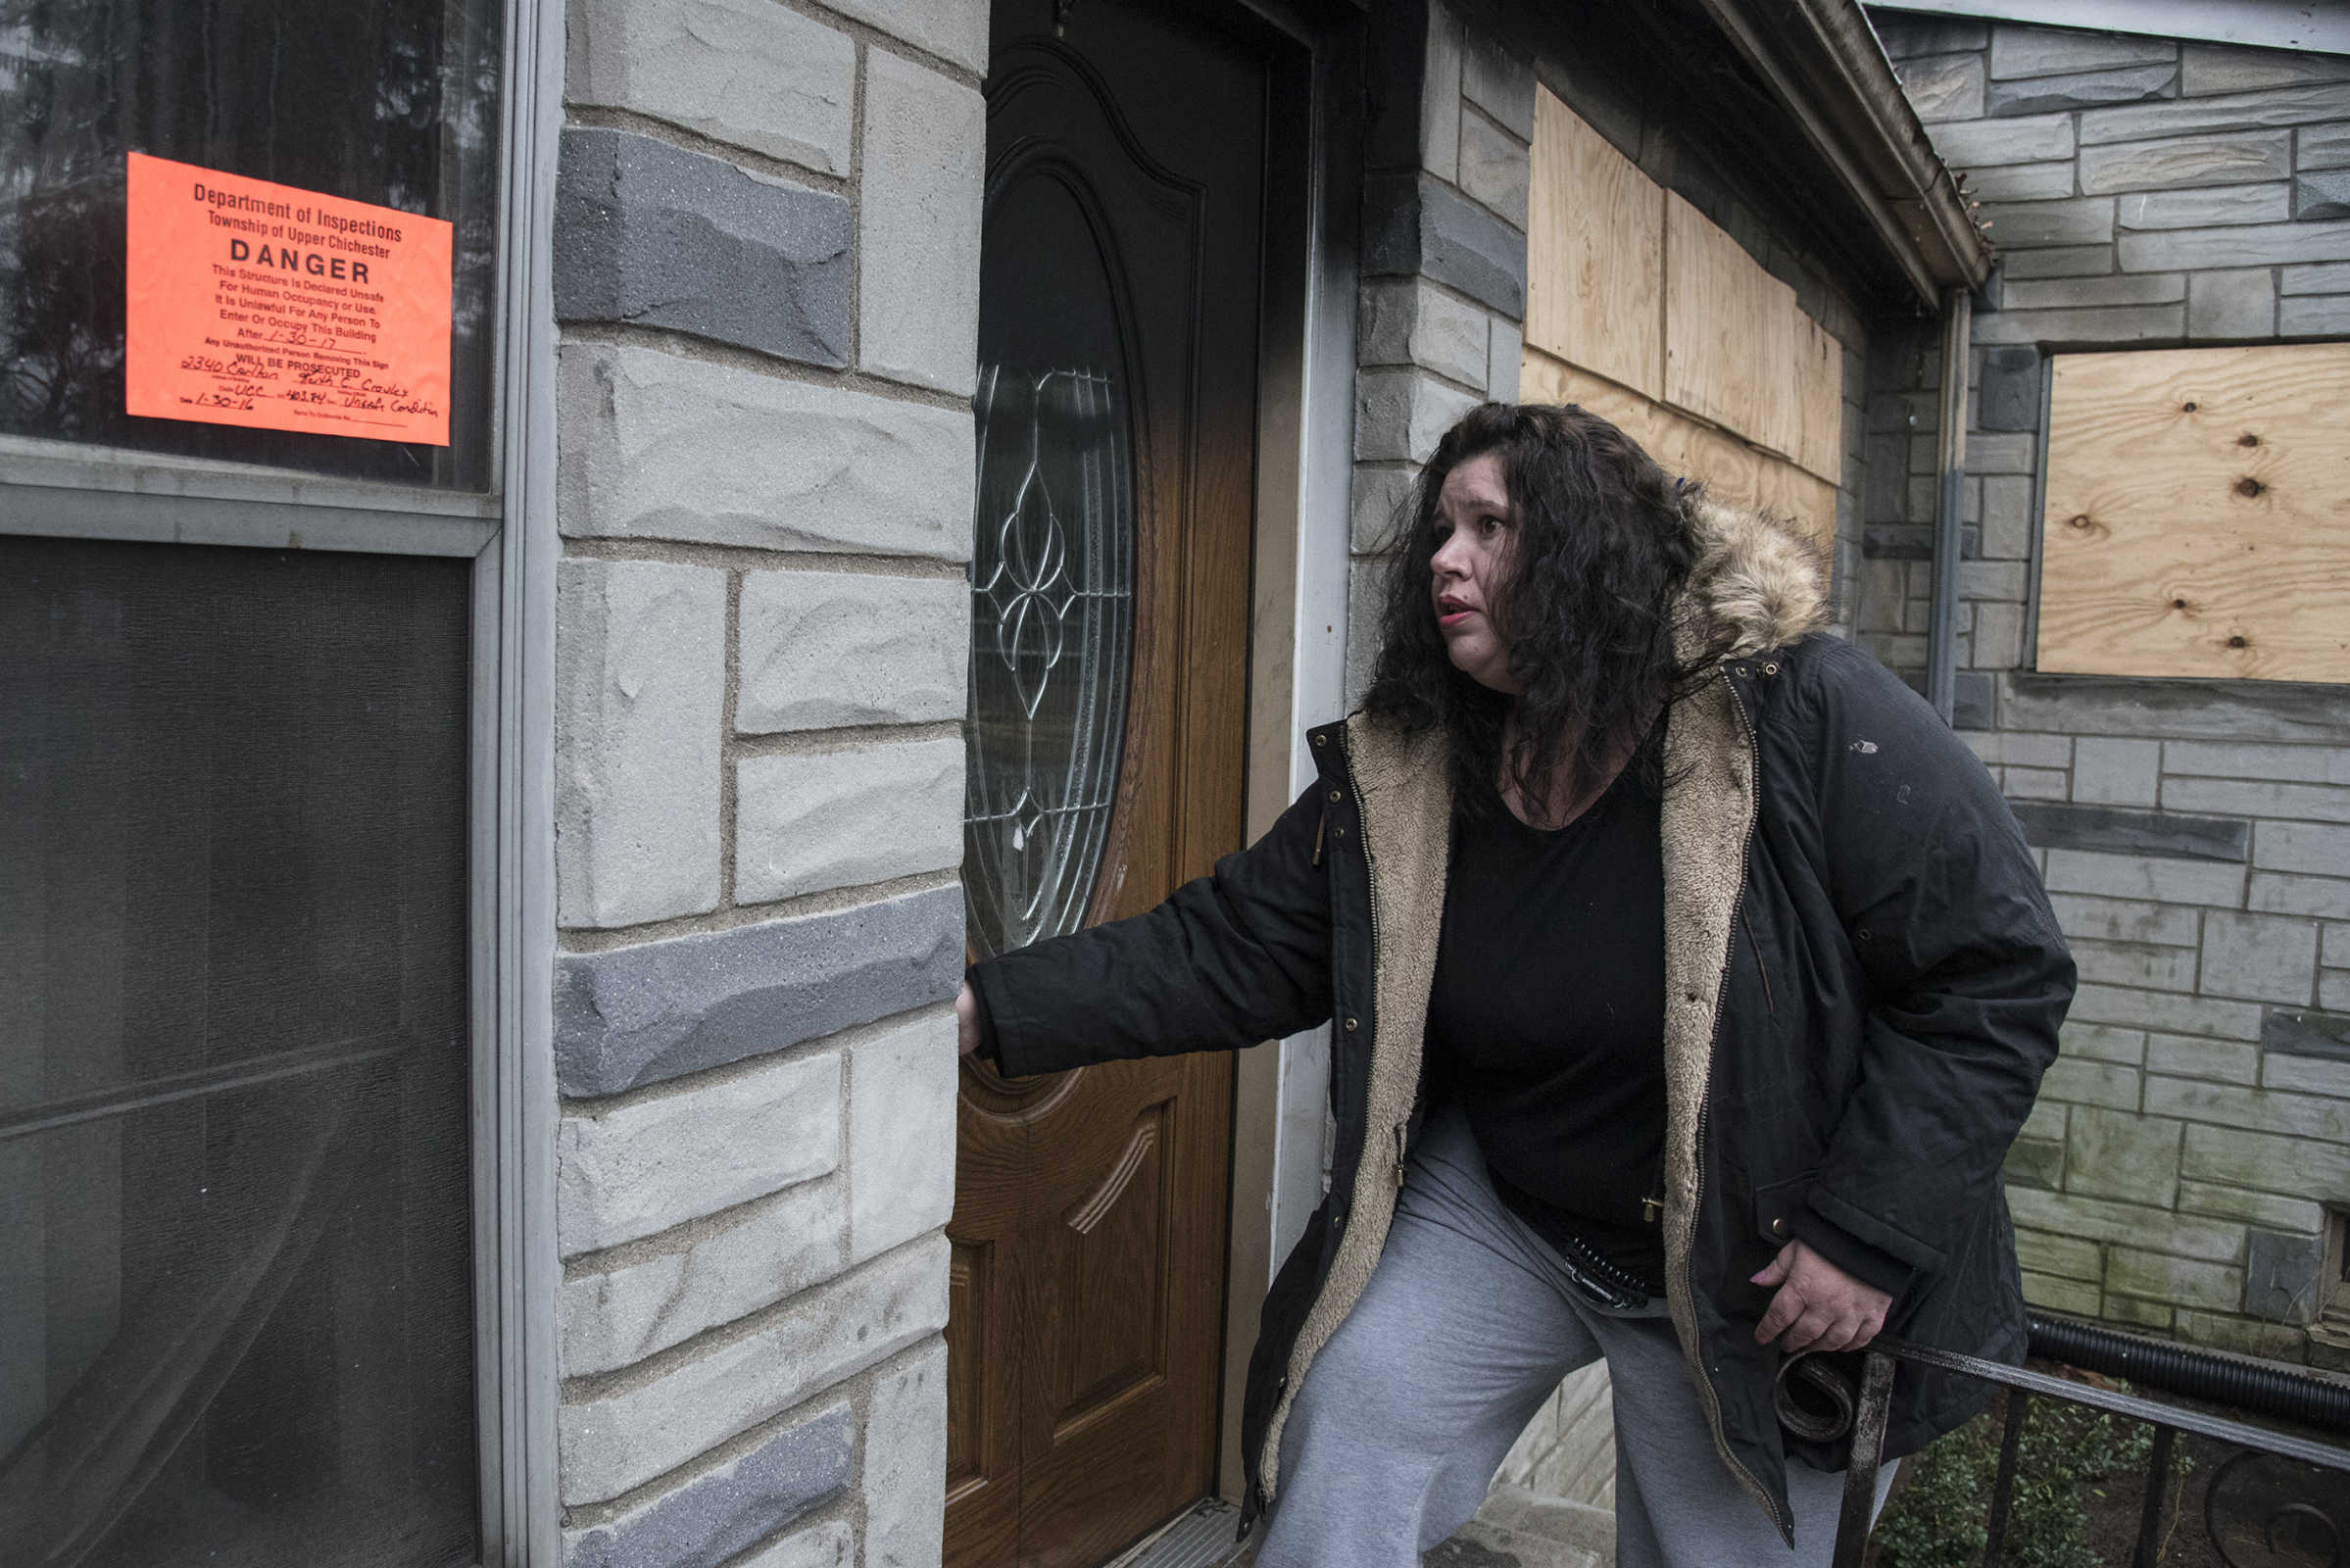 Tiffany Wilson Lane, 42, enters her burned out home in Ogden, PA February 12, 2017.